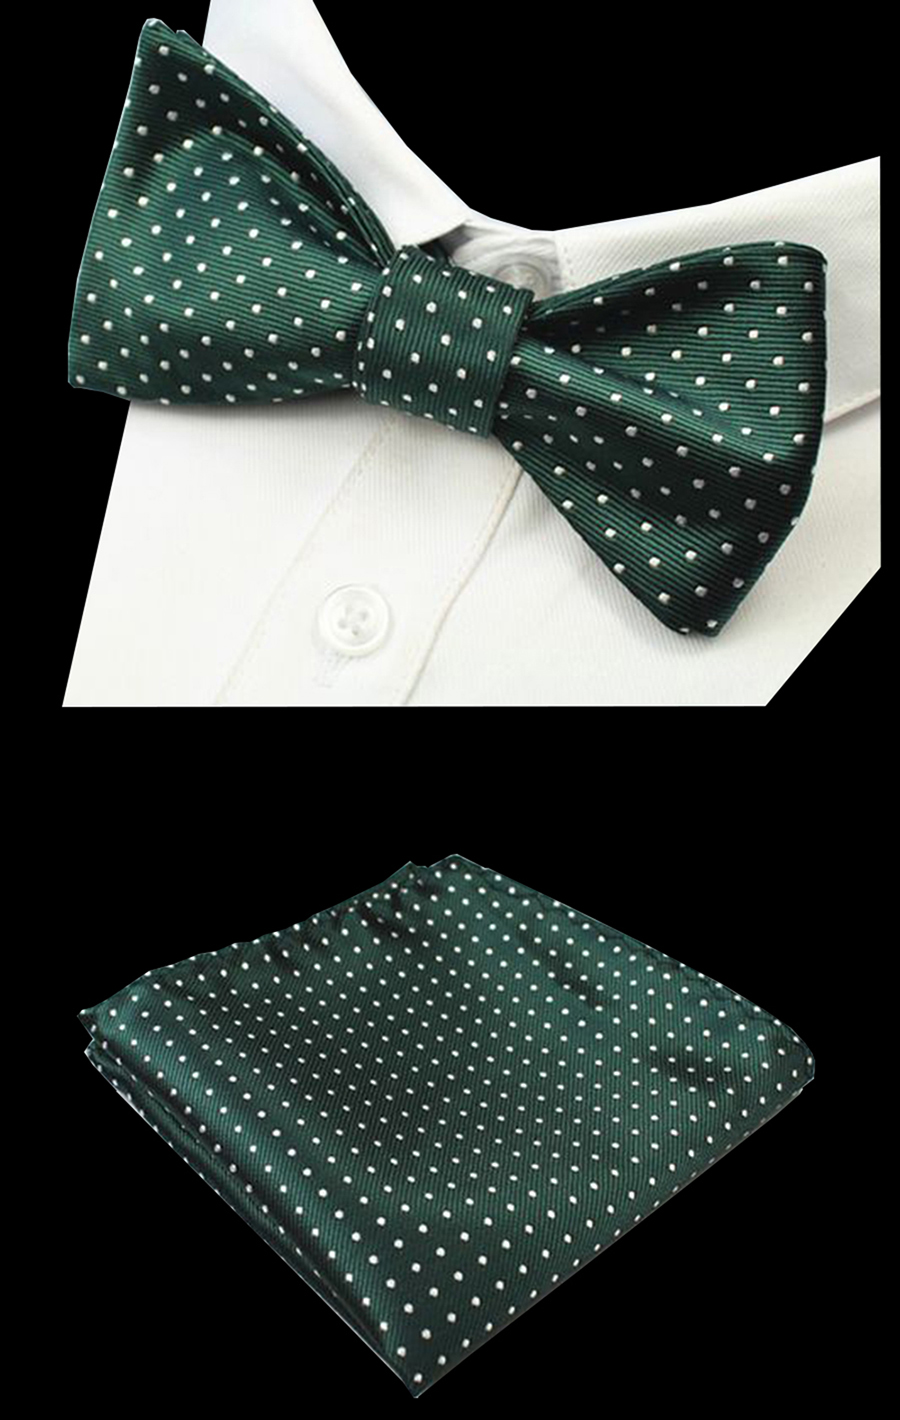 RBOCOTT Mens Self Dot Bowie Tie Set Silk Green Silk Jacquard Woven Bowtie Set Bowuits Dasma Dhe Pocket Birthday Birthday Pocket